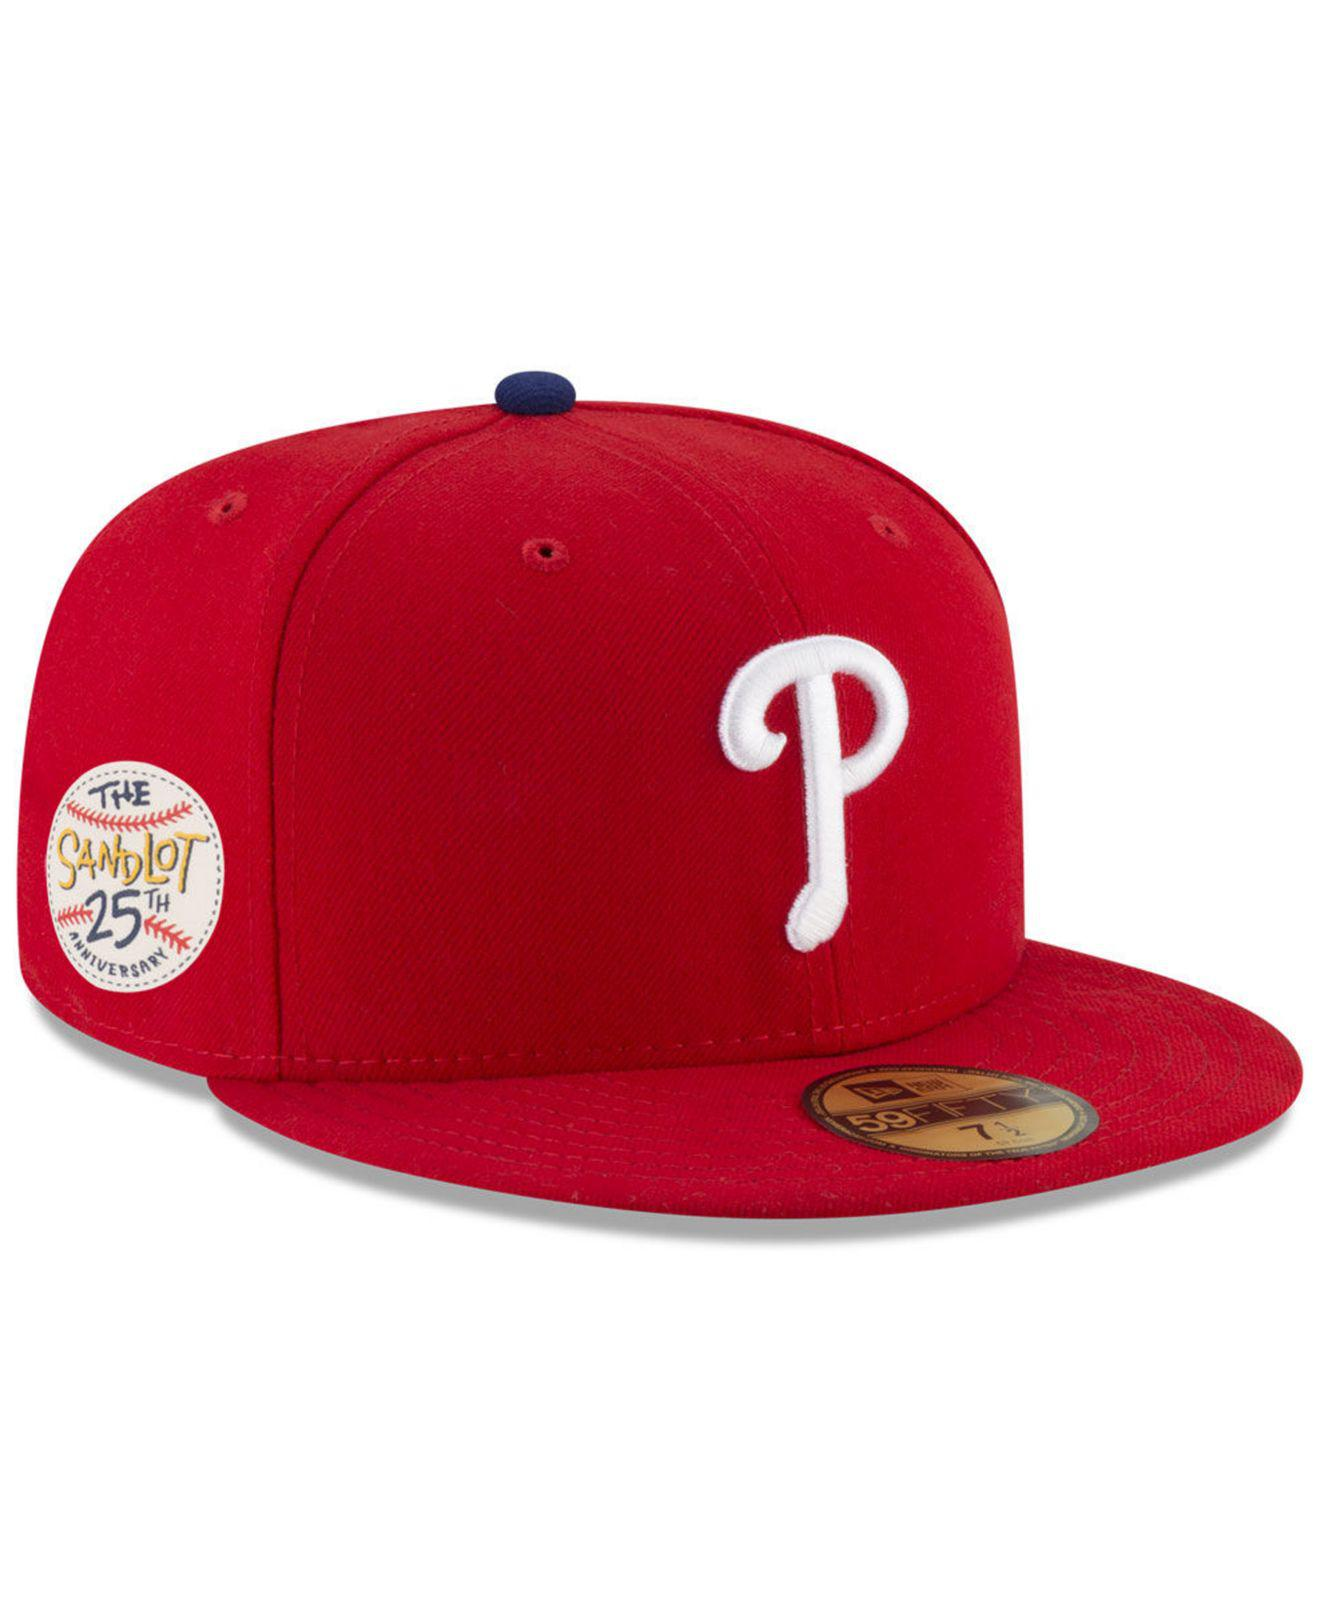 buy online 37ac1 a915d KTZ Philadelphia Phillies Sandlot Patch 59fifty Fitted Cap in Red ...